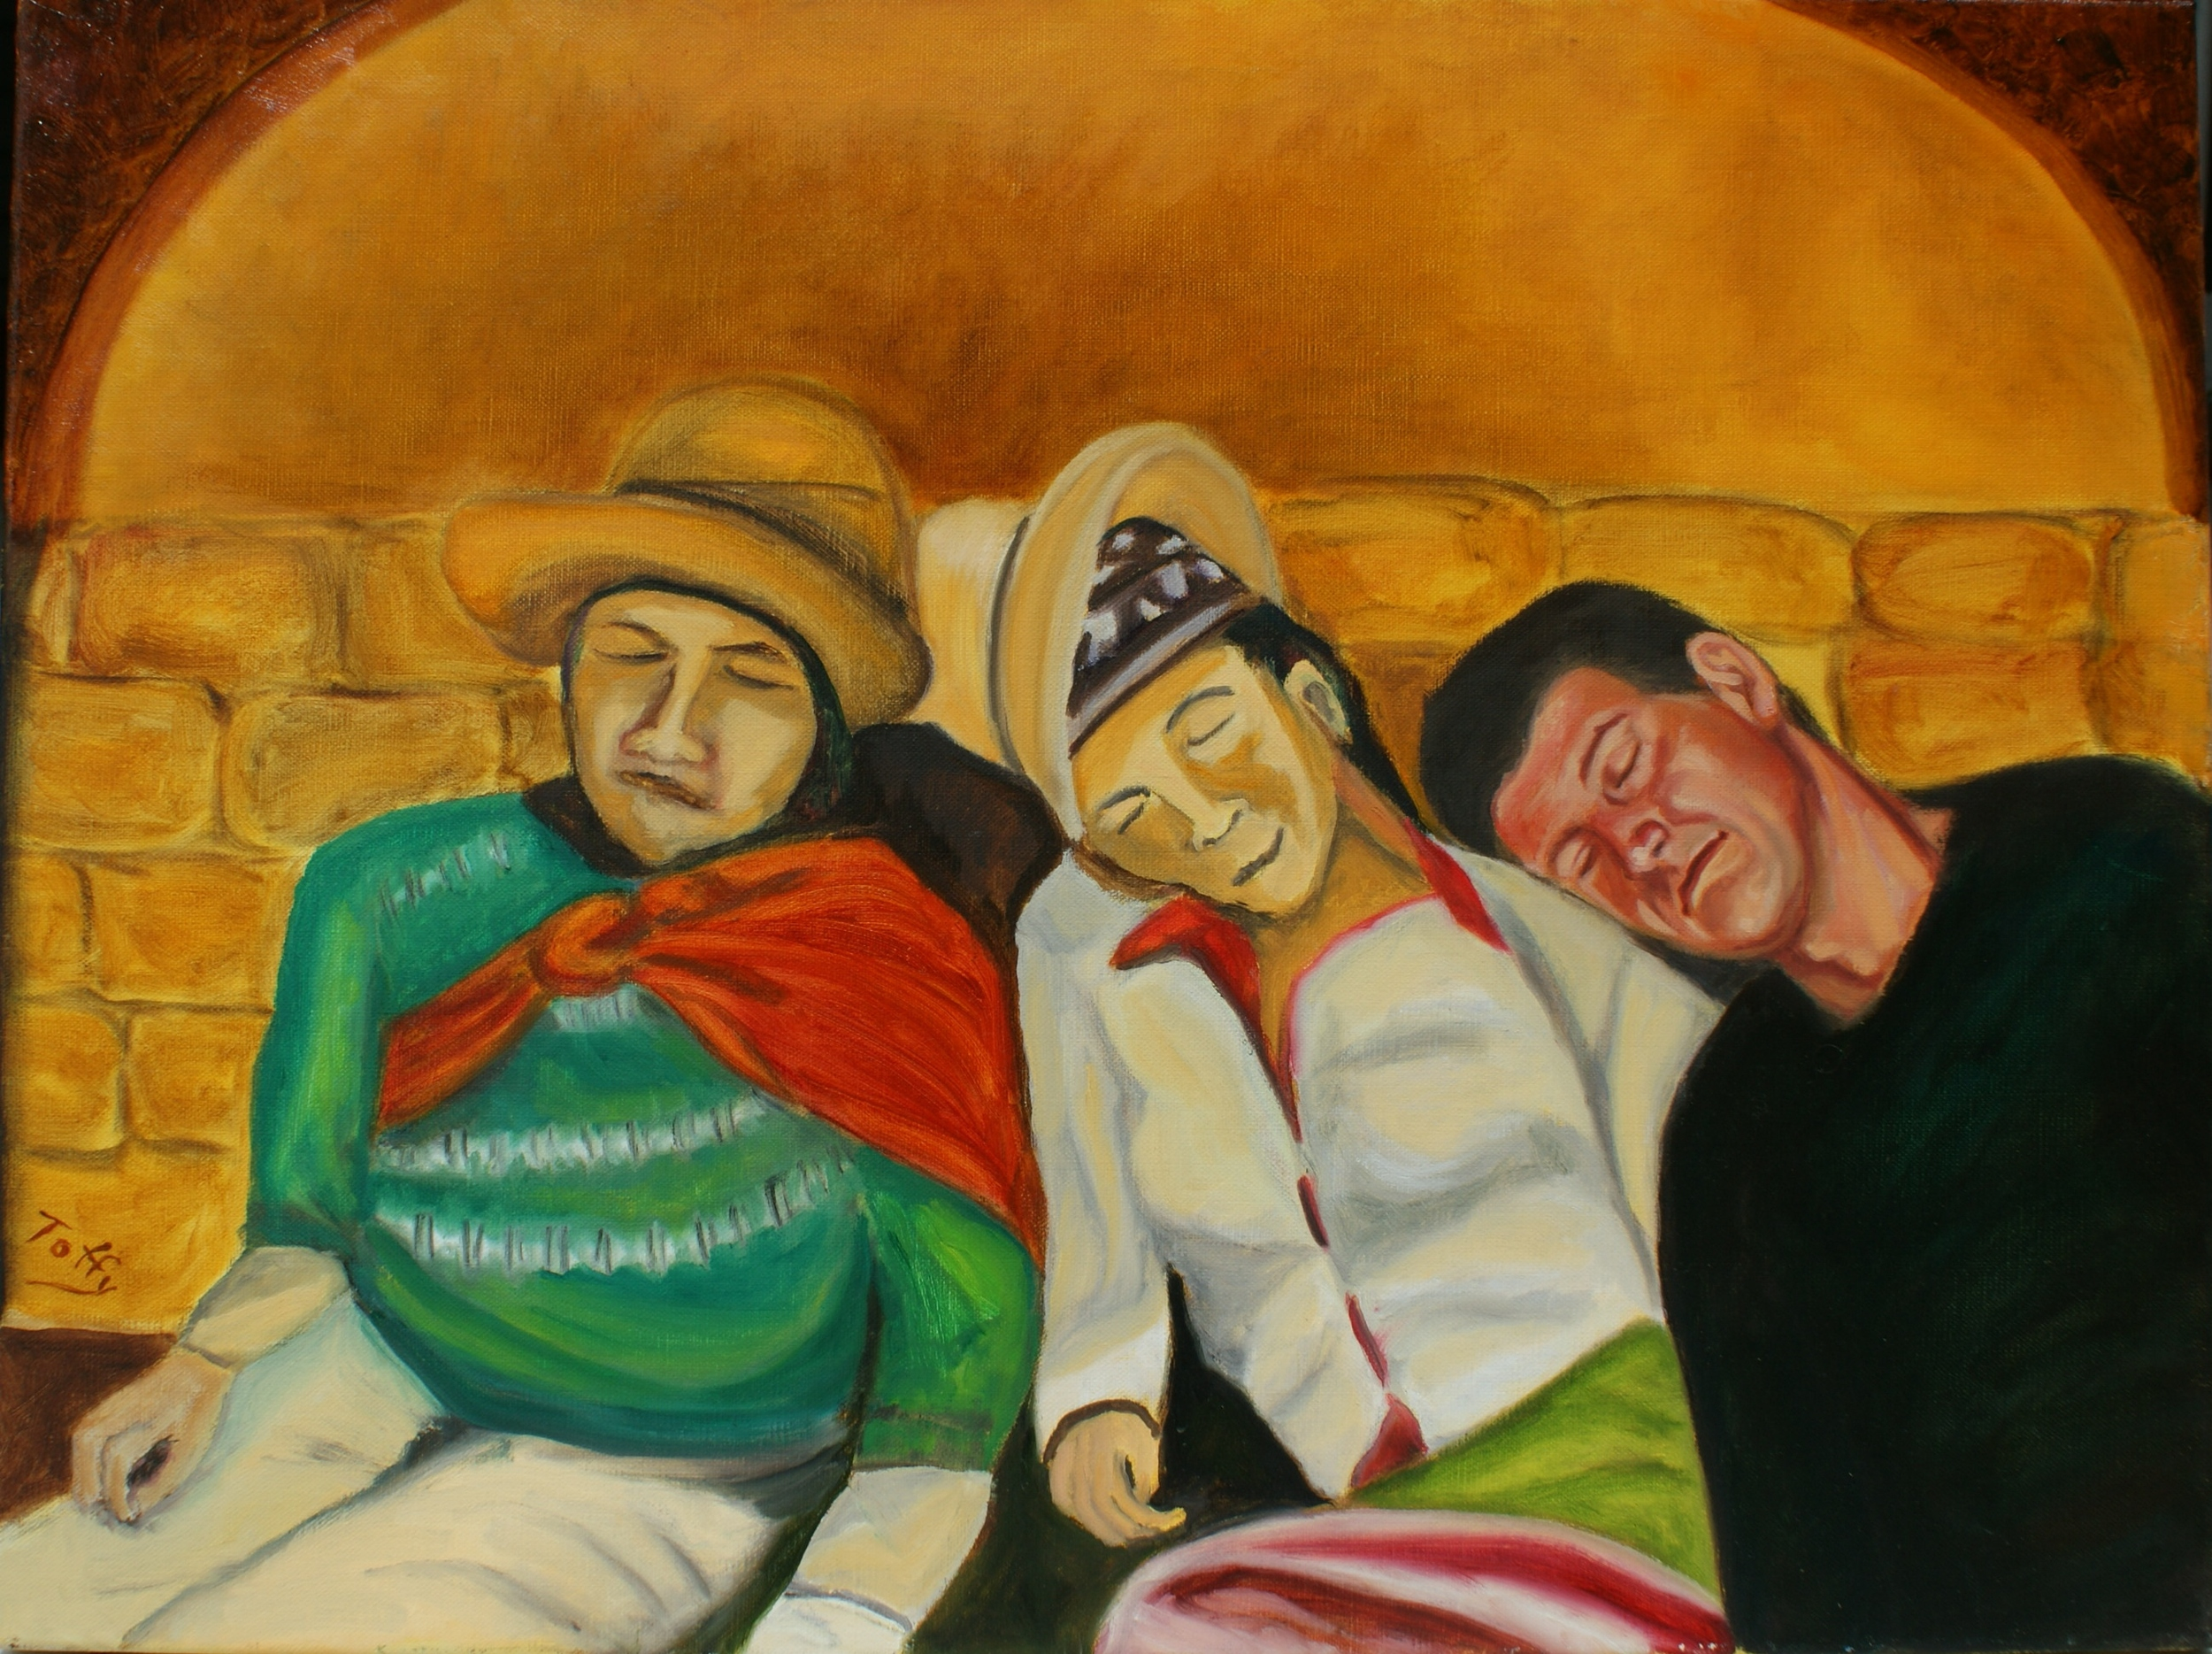 #115  Siesta on a Bolivian painting